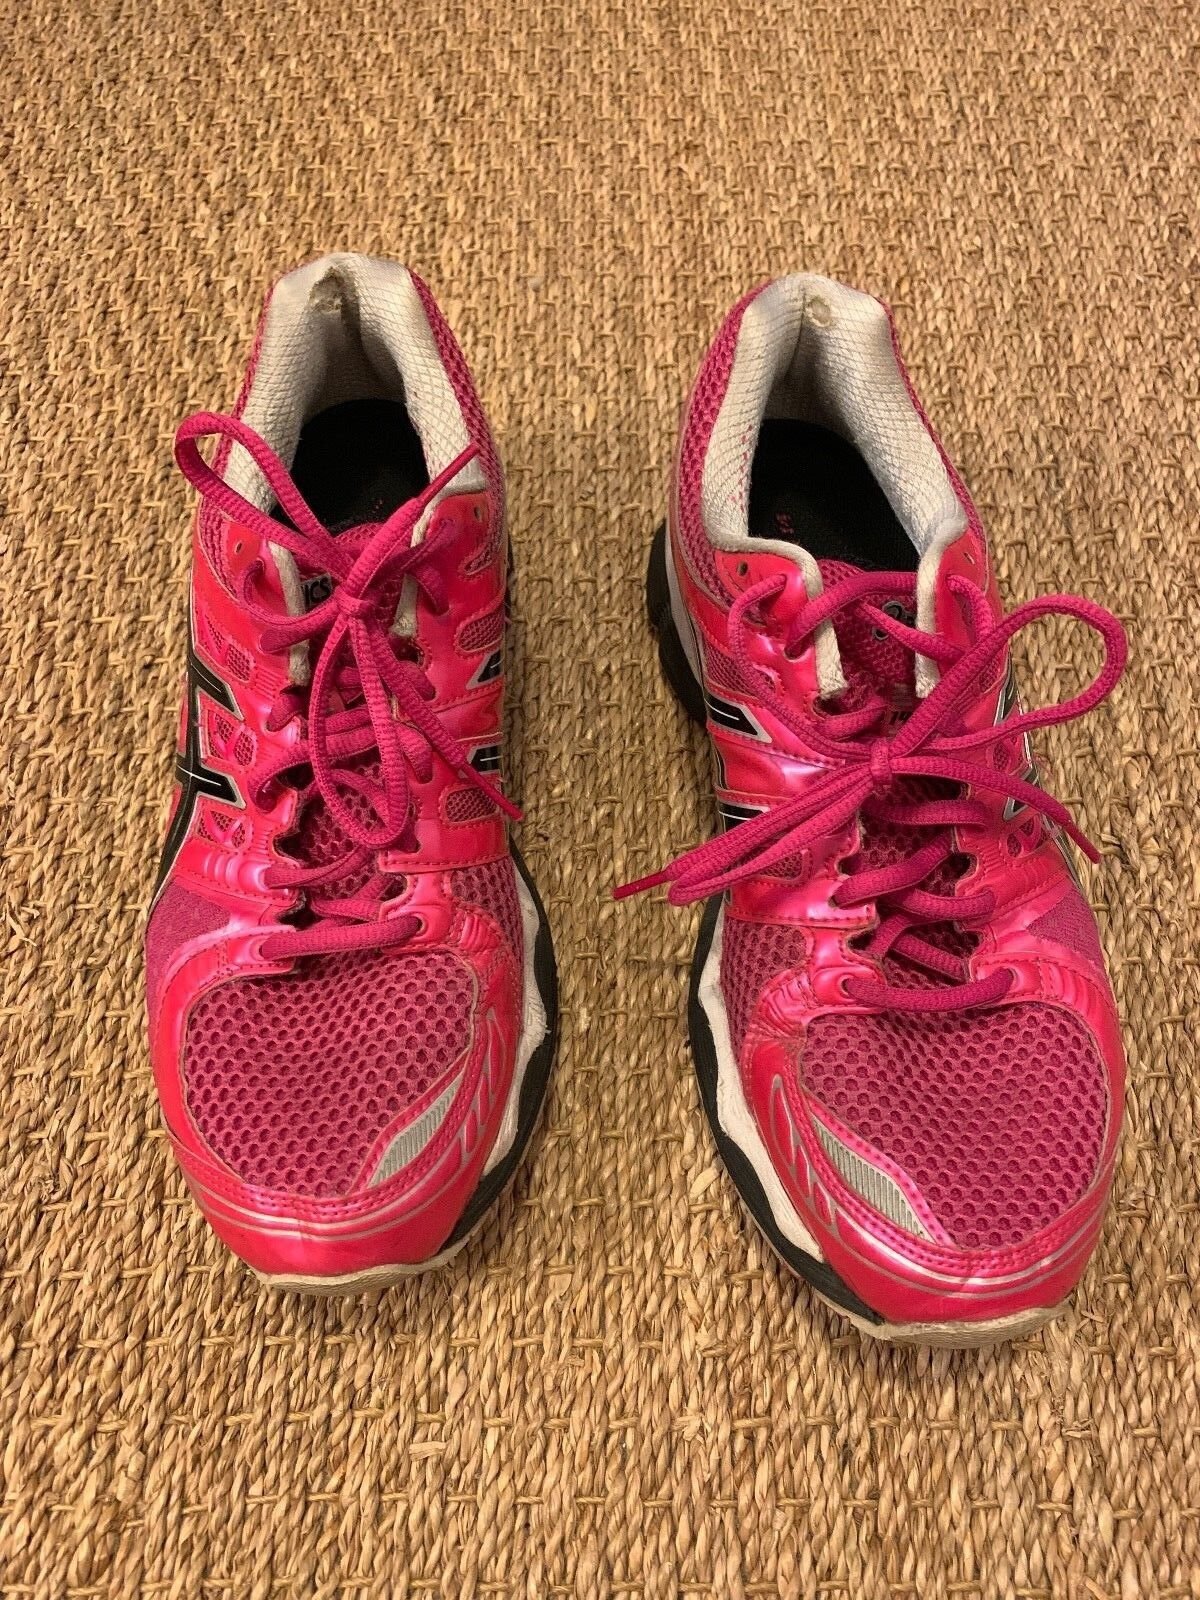 Asics Women's Pink Running shoes Size 10